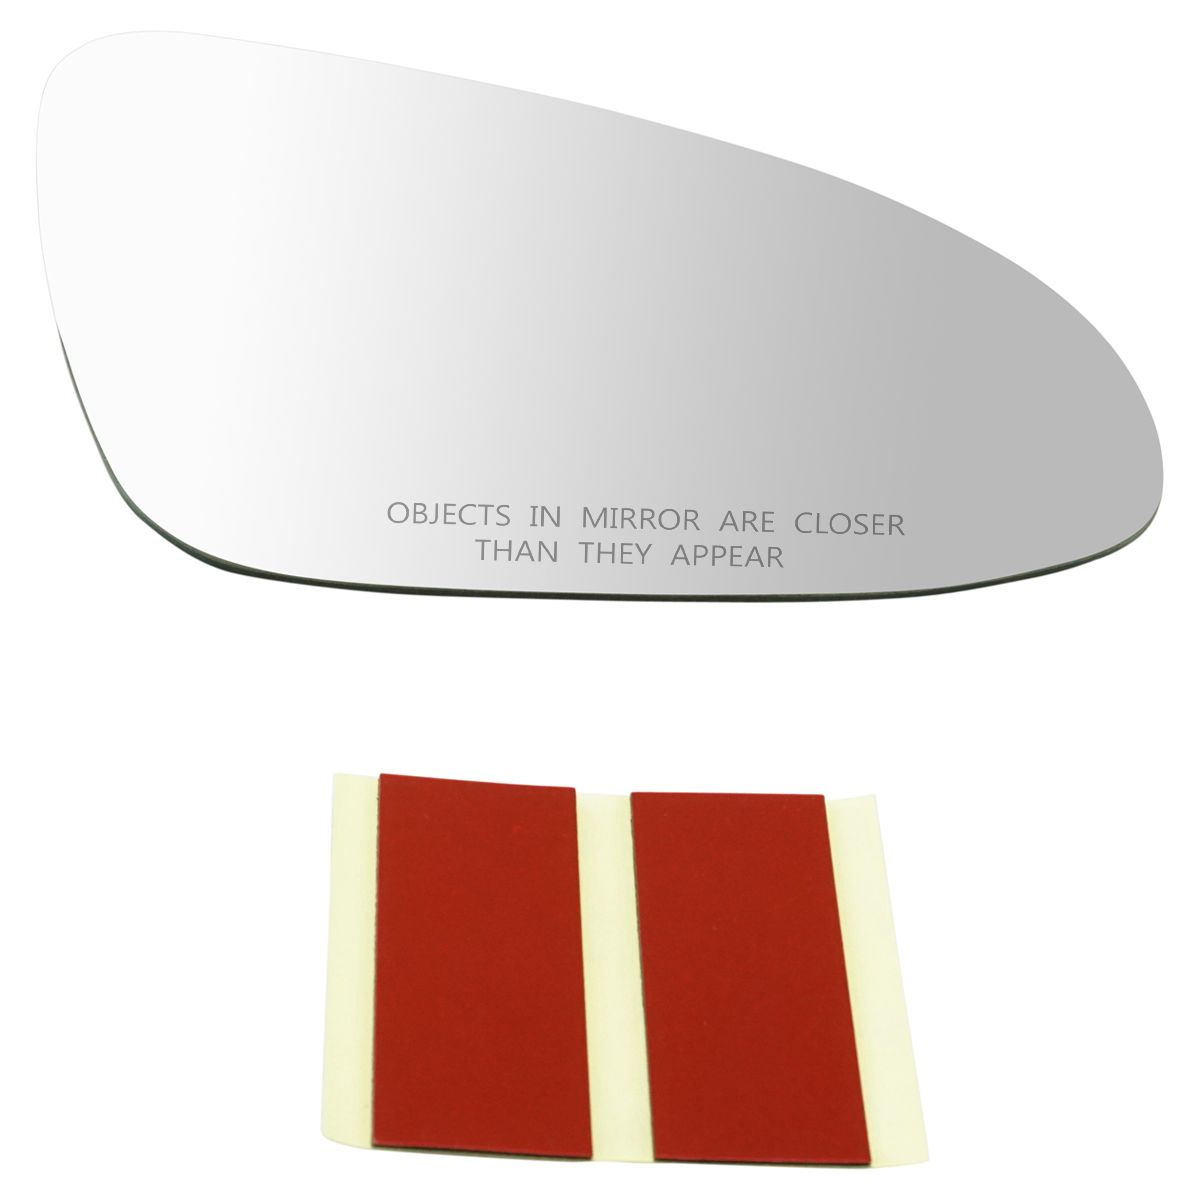 REPLACEMENT MIRROR GLASS WITH BASE PLATE TO FIT Toyota Yaris 06 RH